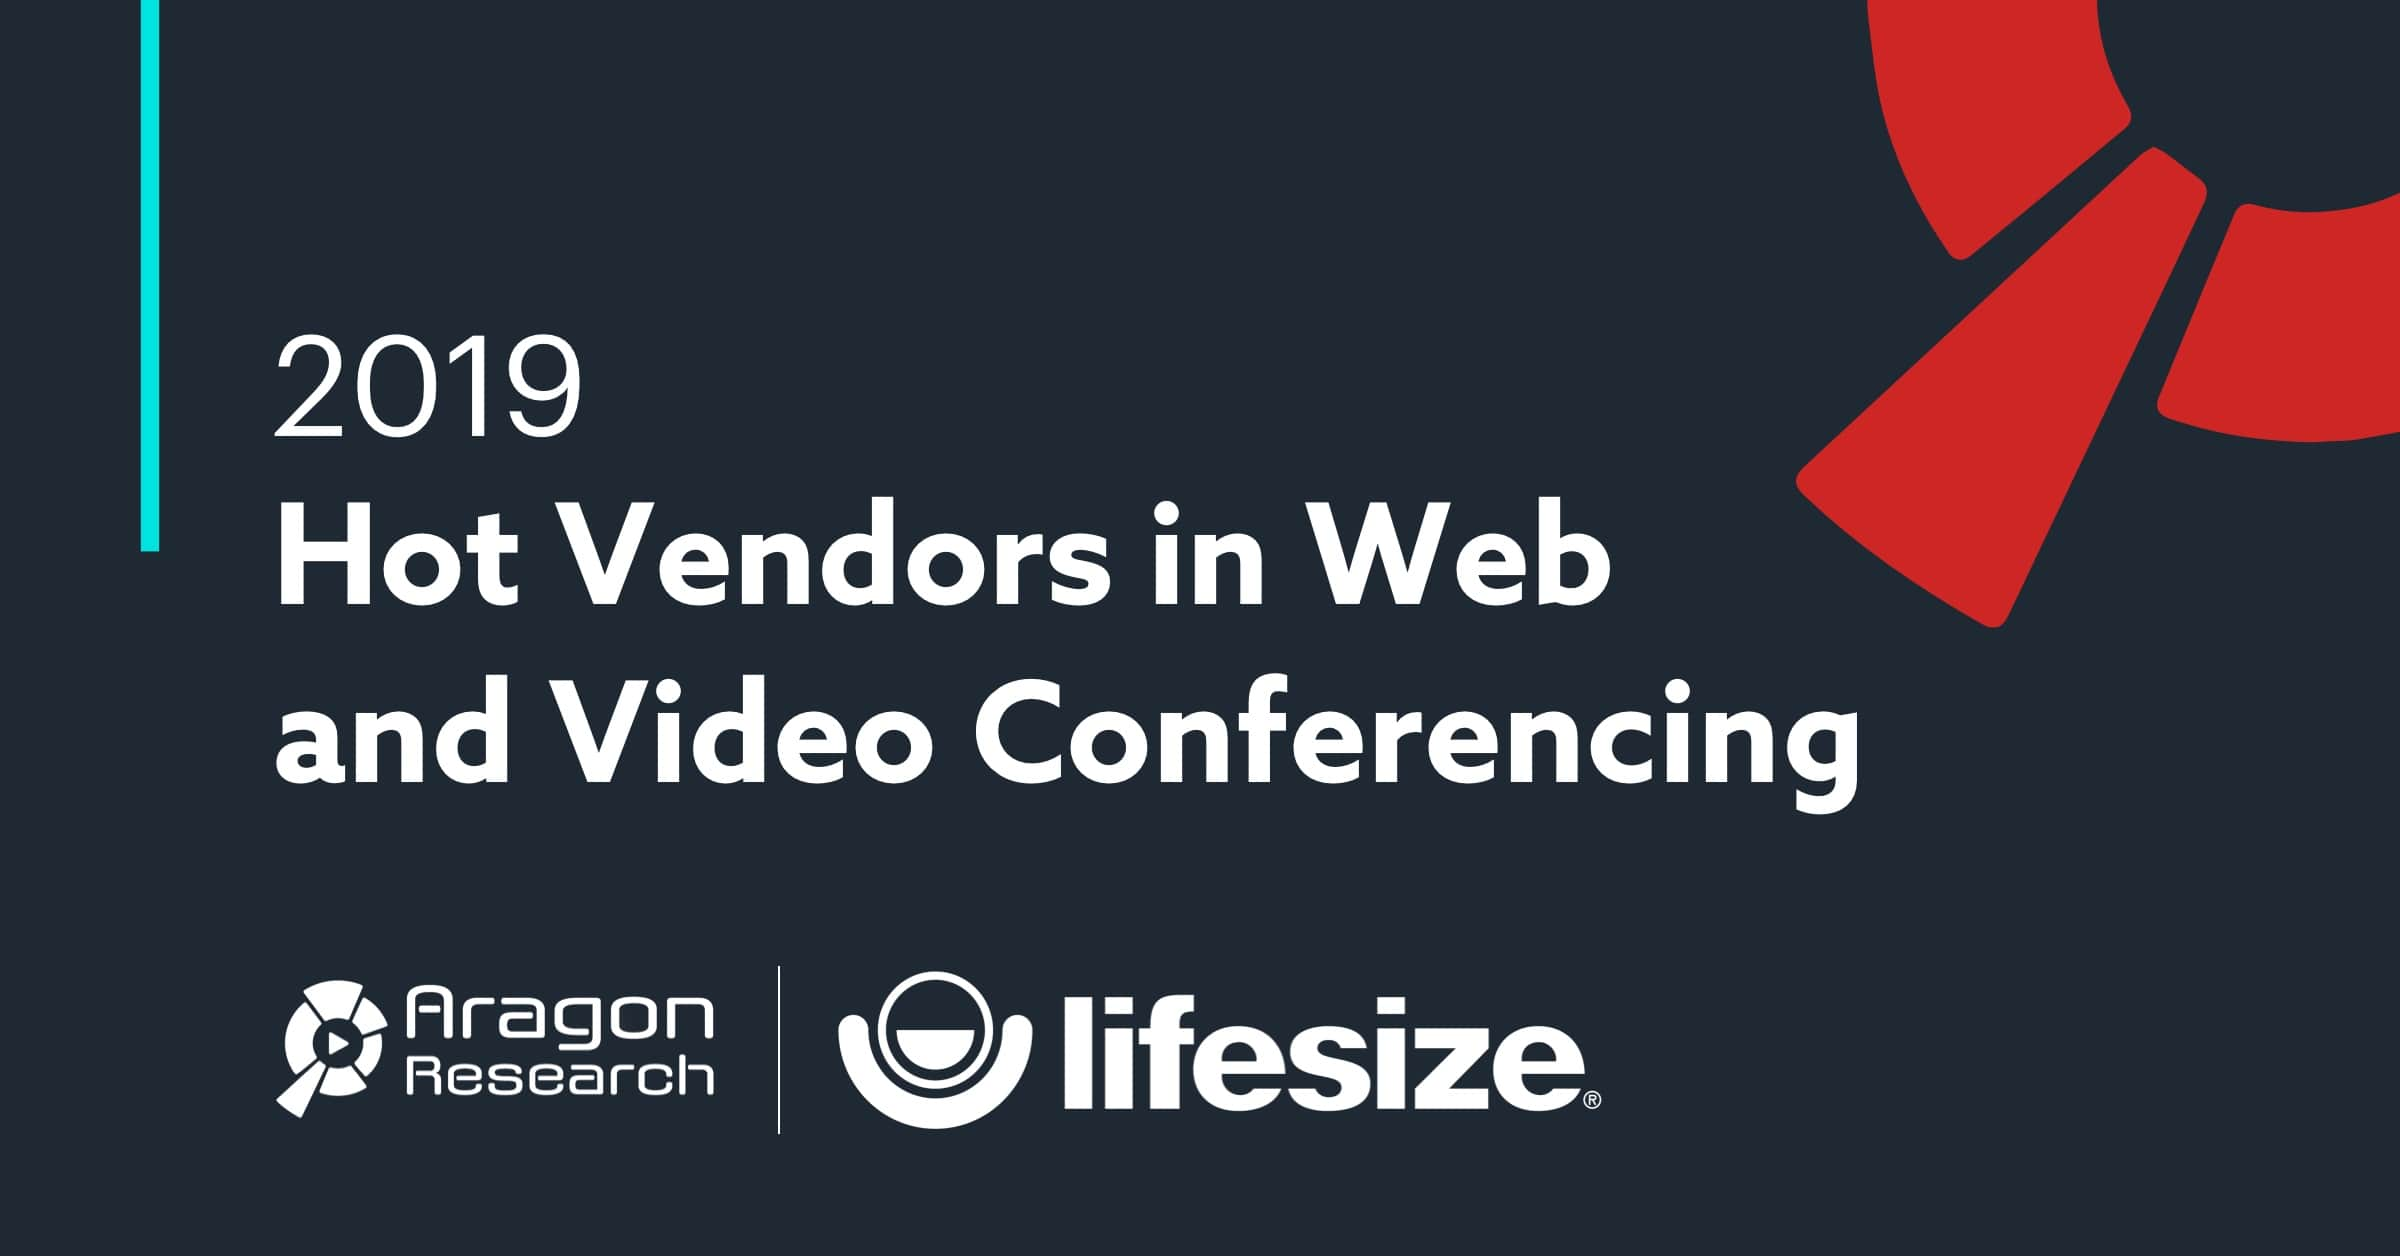 Lifesize was named an Aragon Research Hot Vendor in Web and Video Conferencing.